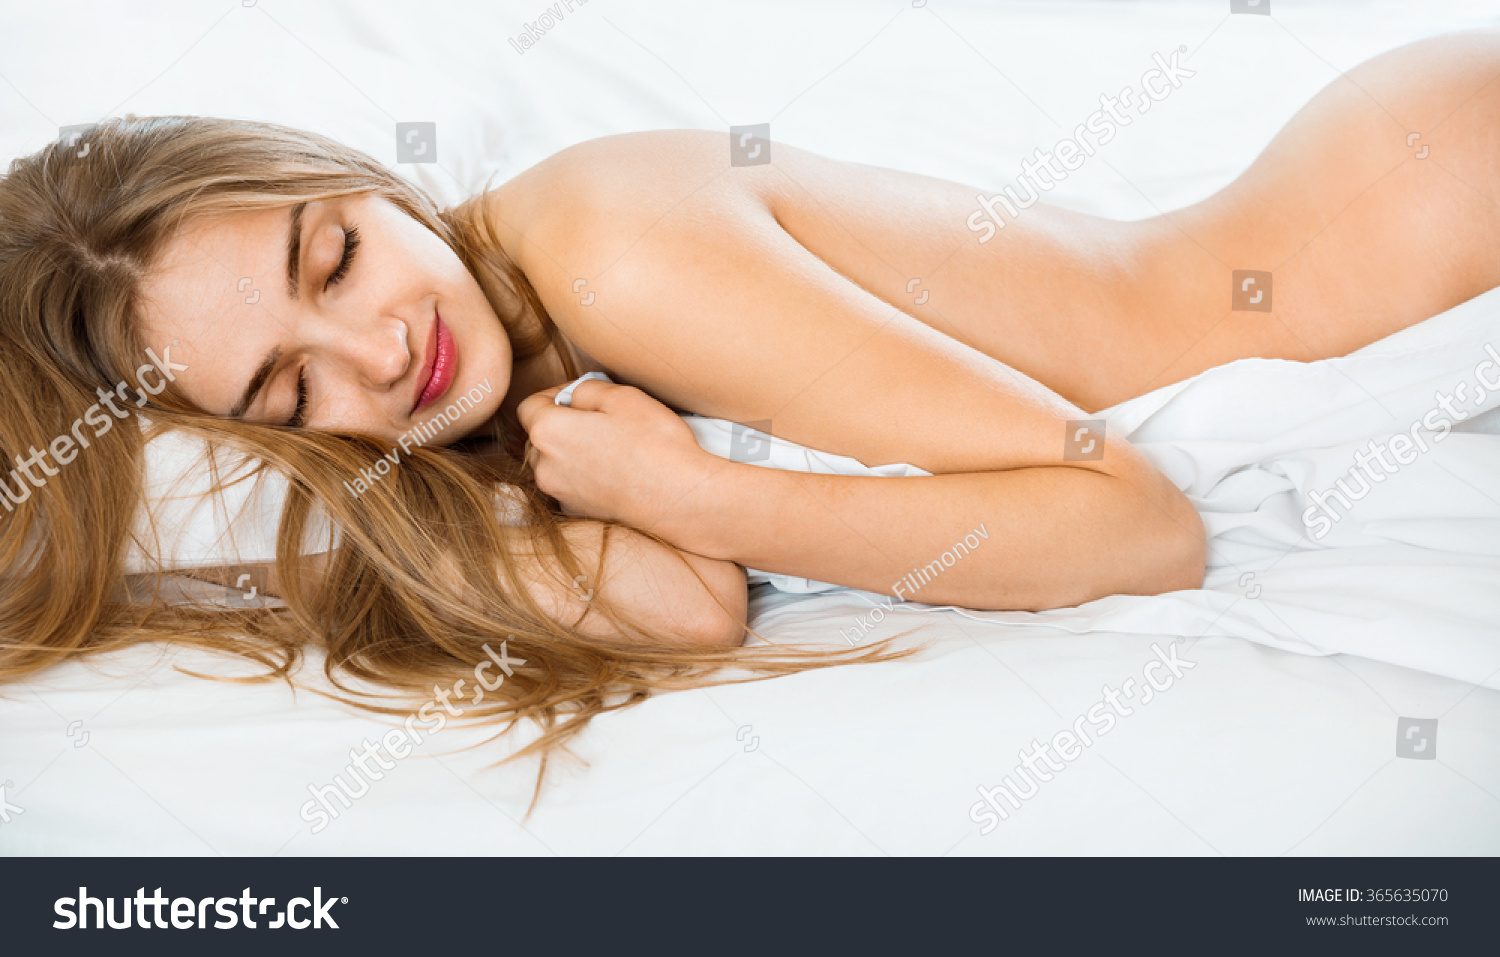 woman sleeping in bed porn